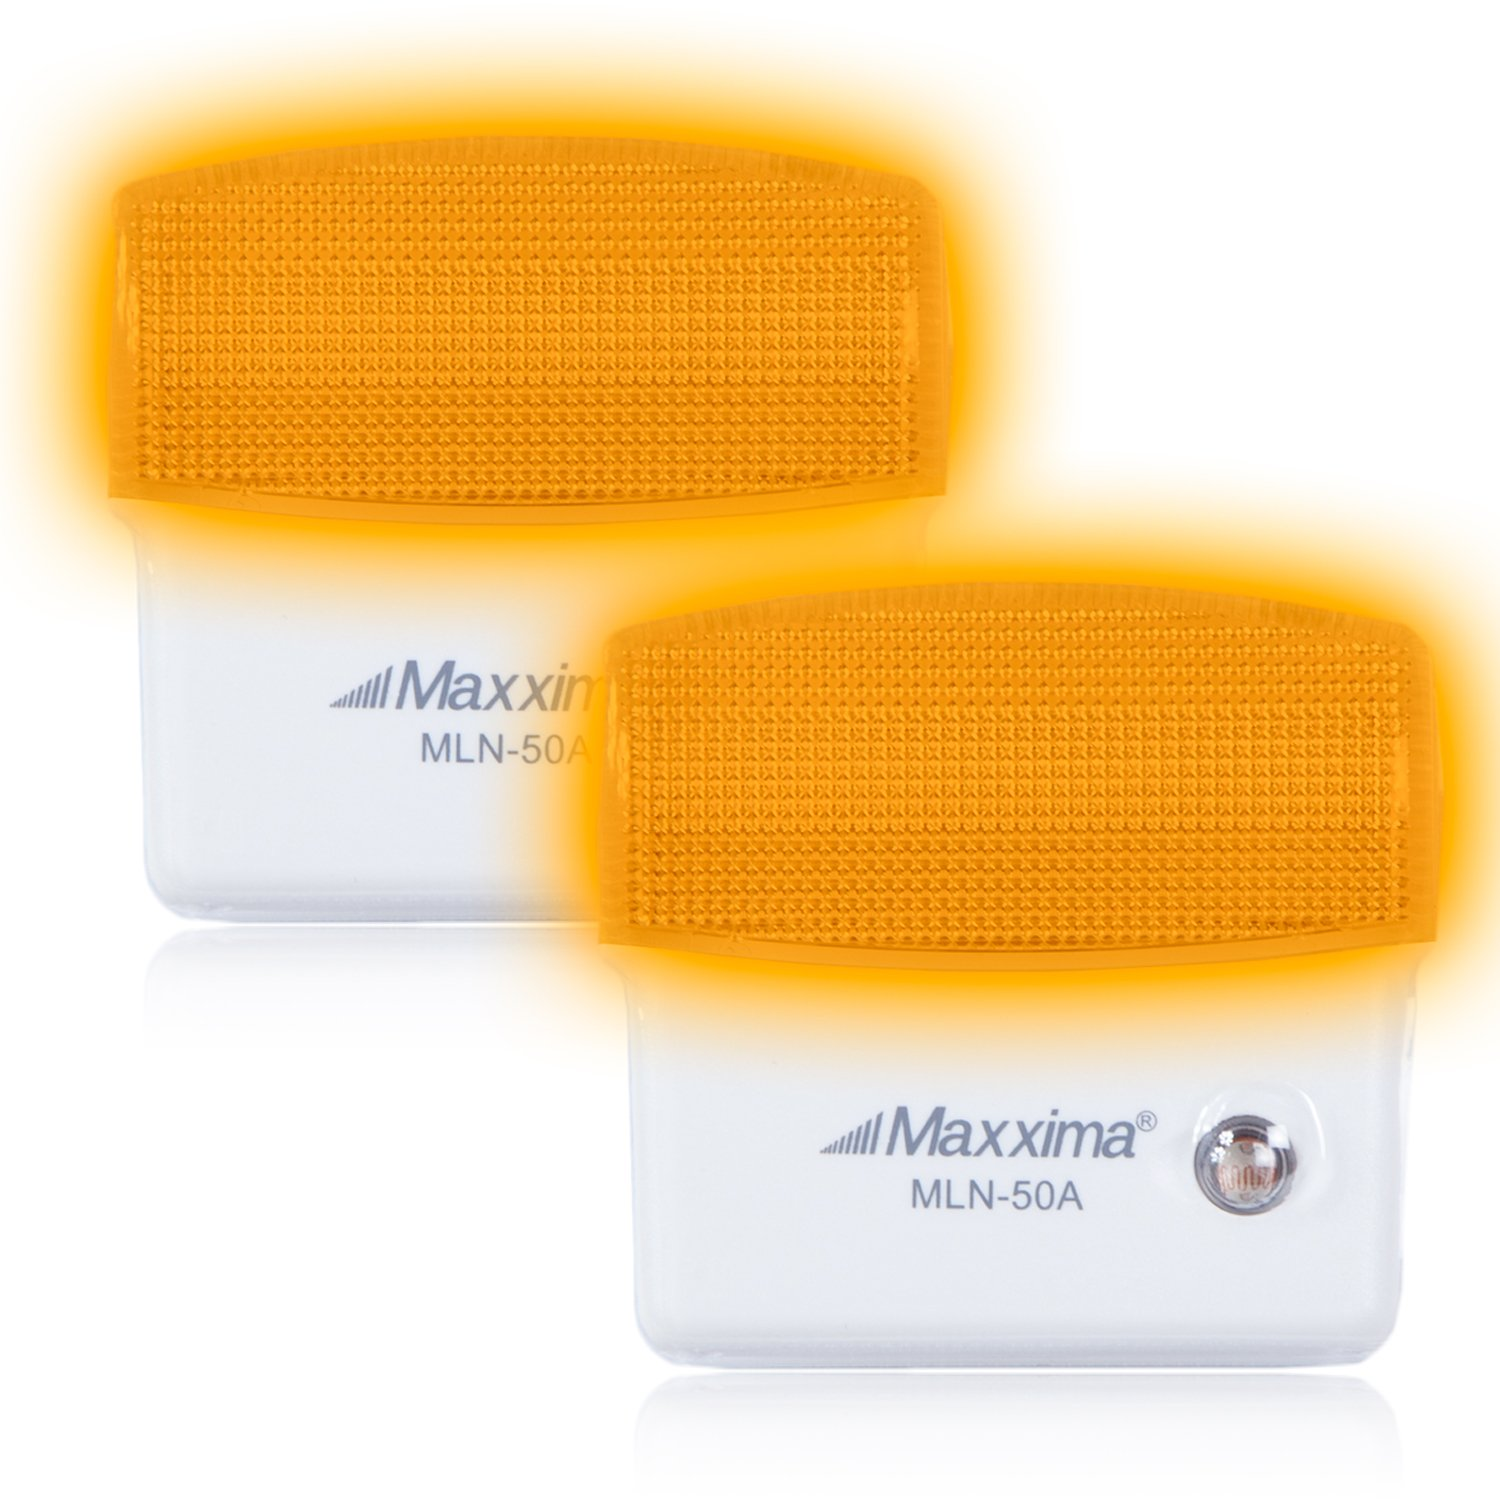 Maxxima MLN-50A Amber LED Night Light With Dusk to Dawn Sensor (Pack of 2)